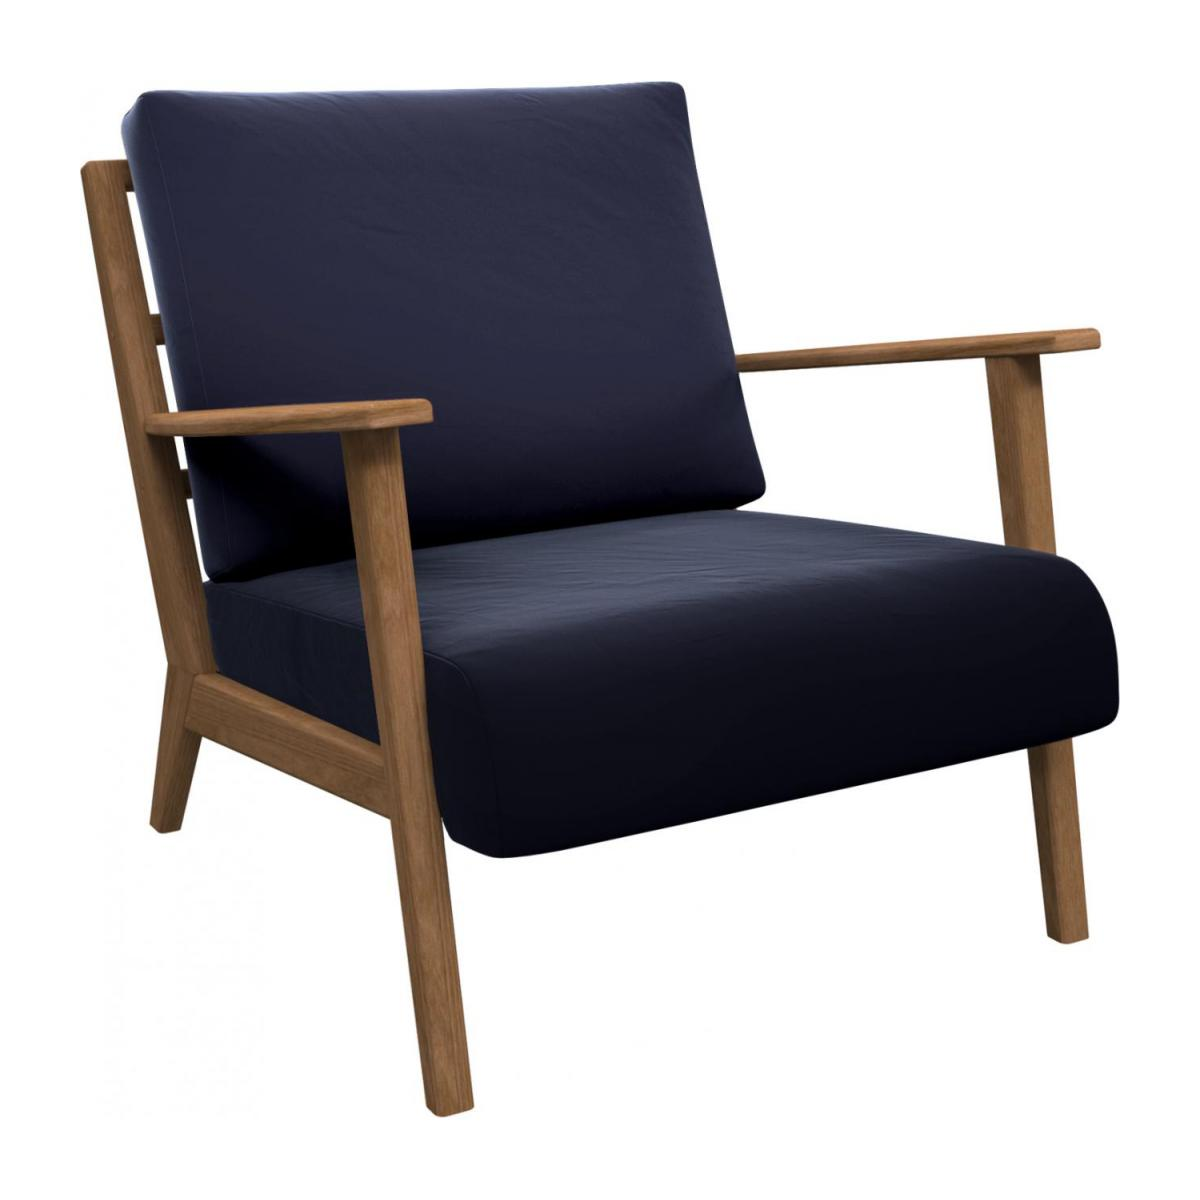 Armchair in Super Velvet fabric, dark blue n°1